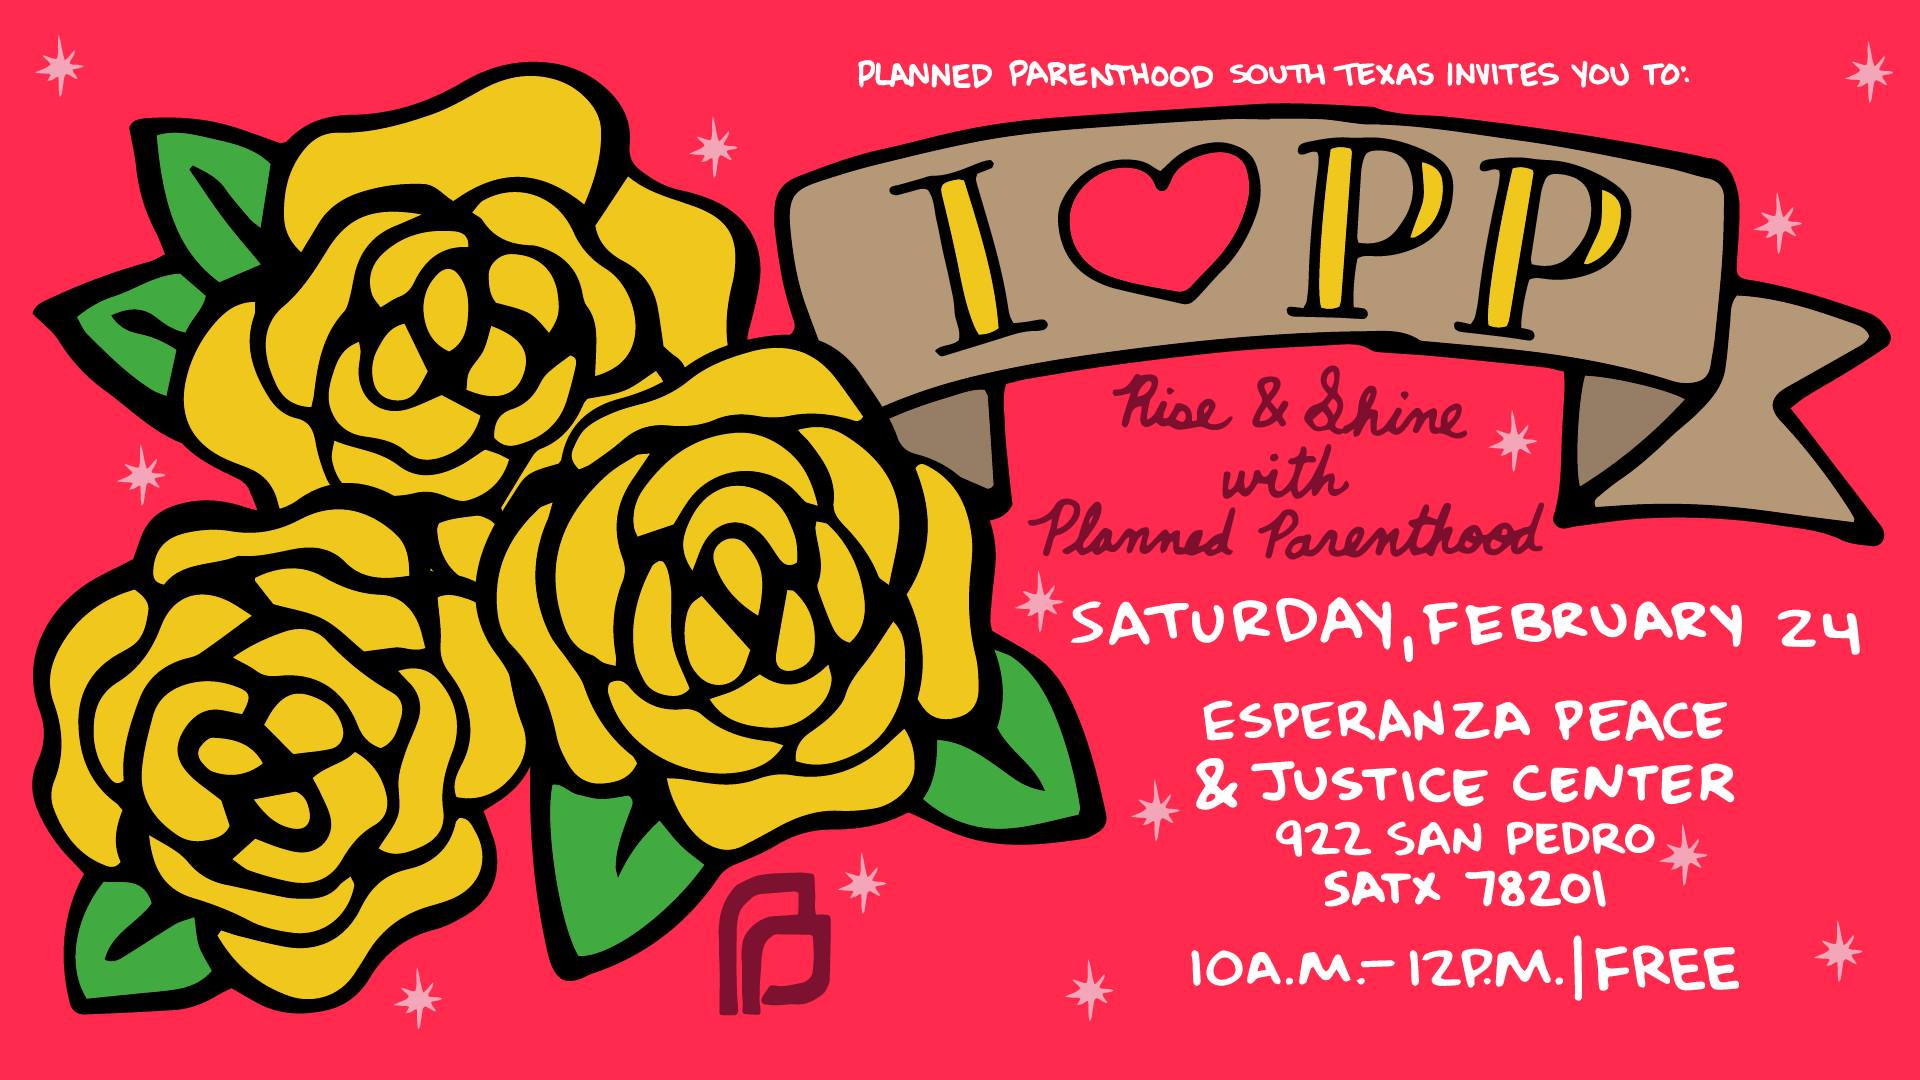 """Last year, you pushed back against anti-choice protestors at the """"I Stand with PP"""" rally in February. This year we're inviting you to once again show your love for Planned Parenthood at a rise & shine event on Saturday, Feb 24 at the Esperanza Peace & Justice Center.  It'll be a morning of poster-making, t-shirt screening, and fun activities the entire family can enjoy (yay!)  We'll be making posters/signs for the International Women's Day March (happening the following Saturday on March 3); writing thank you letters to PP staff; writing postcards to our elected officials supporting PP; and Mujeres Marcharan will be onsite screening t-shirts (must bring your own shirt). And of course, learn about our wonderful volunteer opportunities and how you can get involved with Planned Parenthood.   We'll also be giving away some swanky PP swag!   Event is FREE! Join us!"""